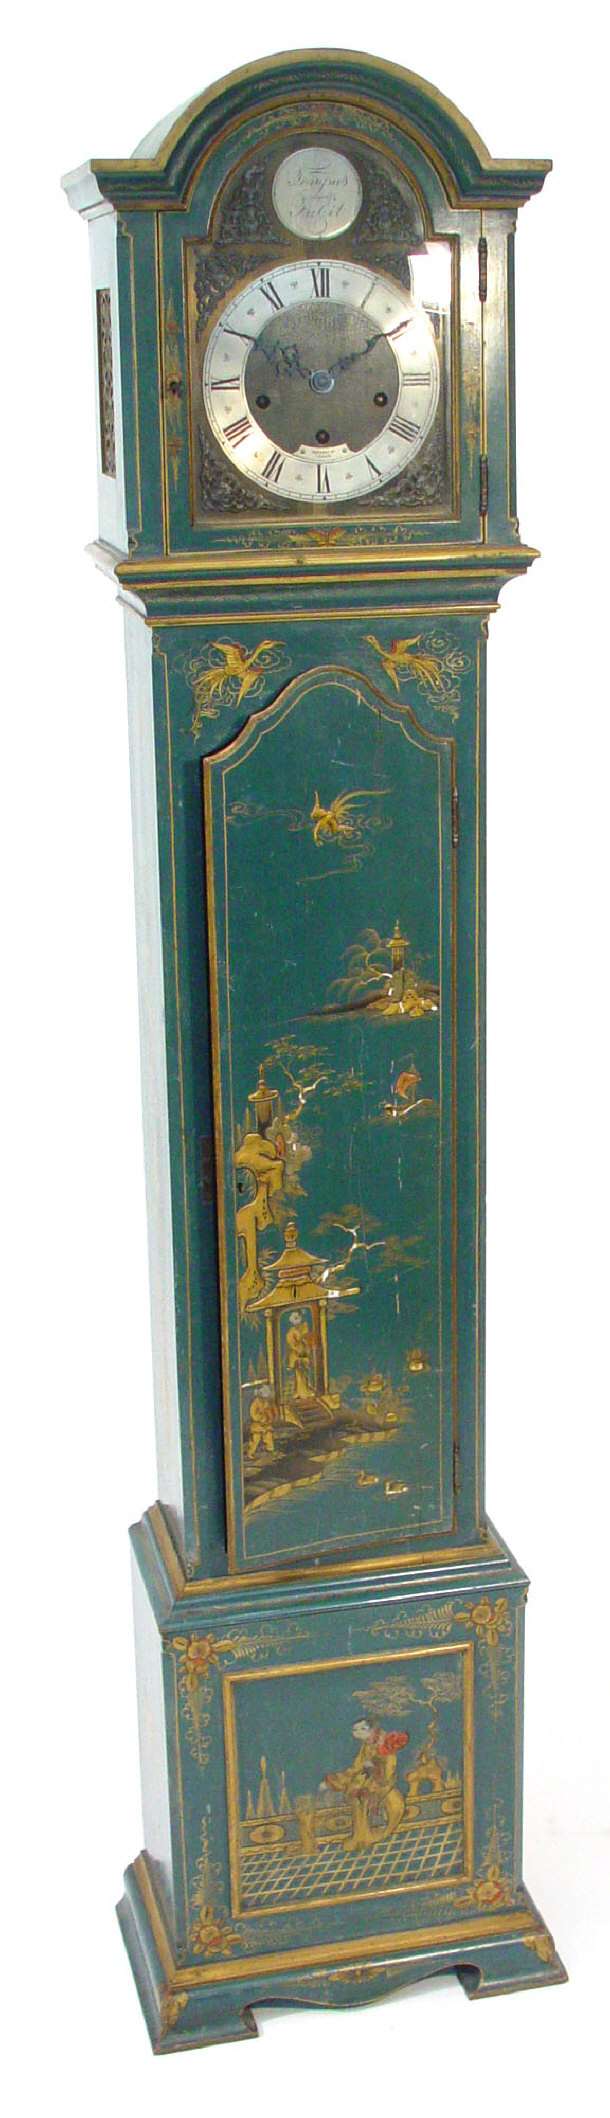 1930s chinoiserie long case clock with Westminster